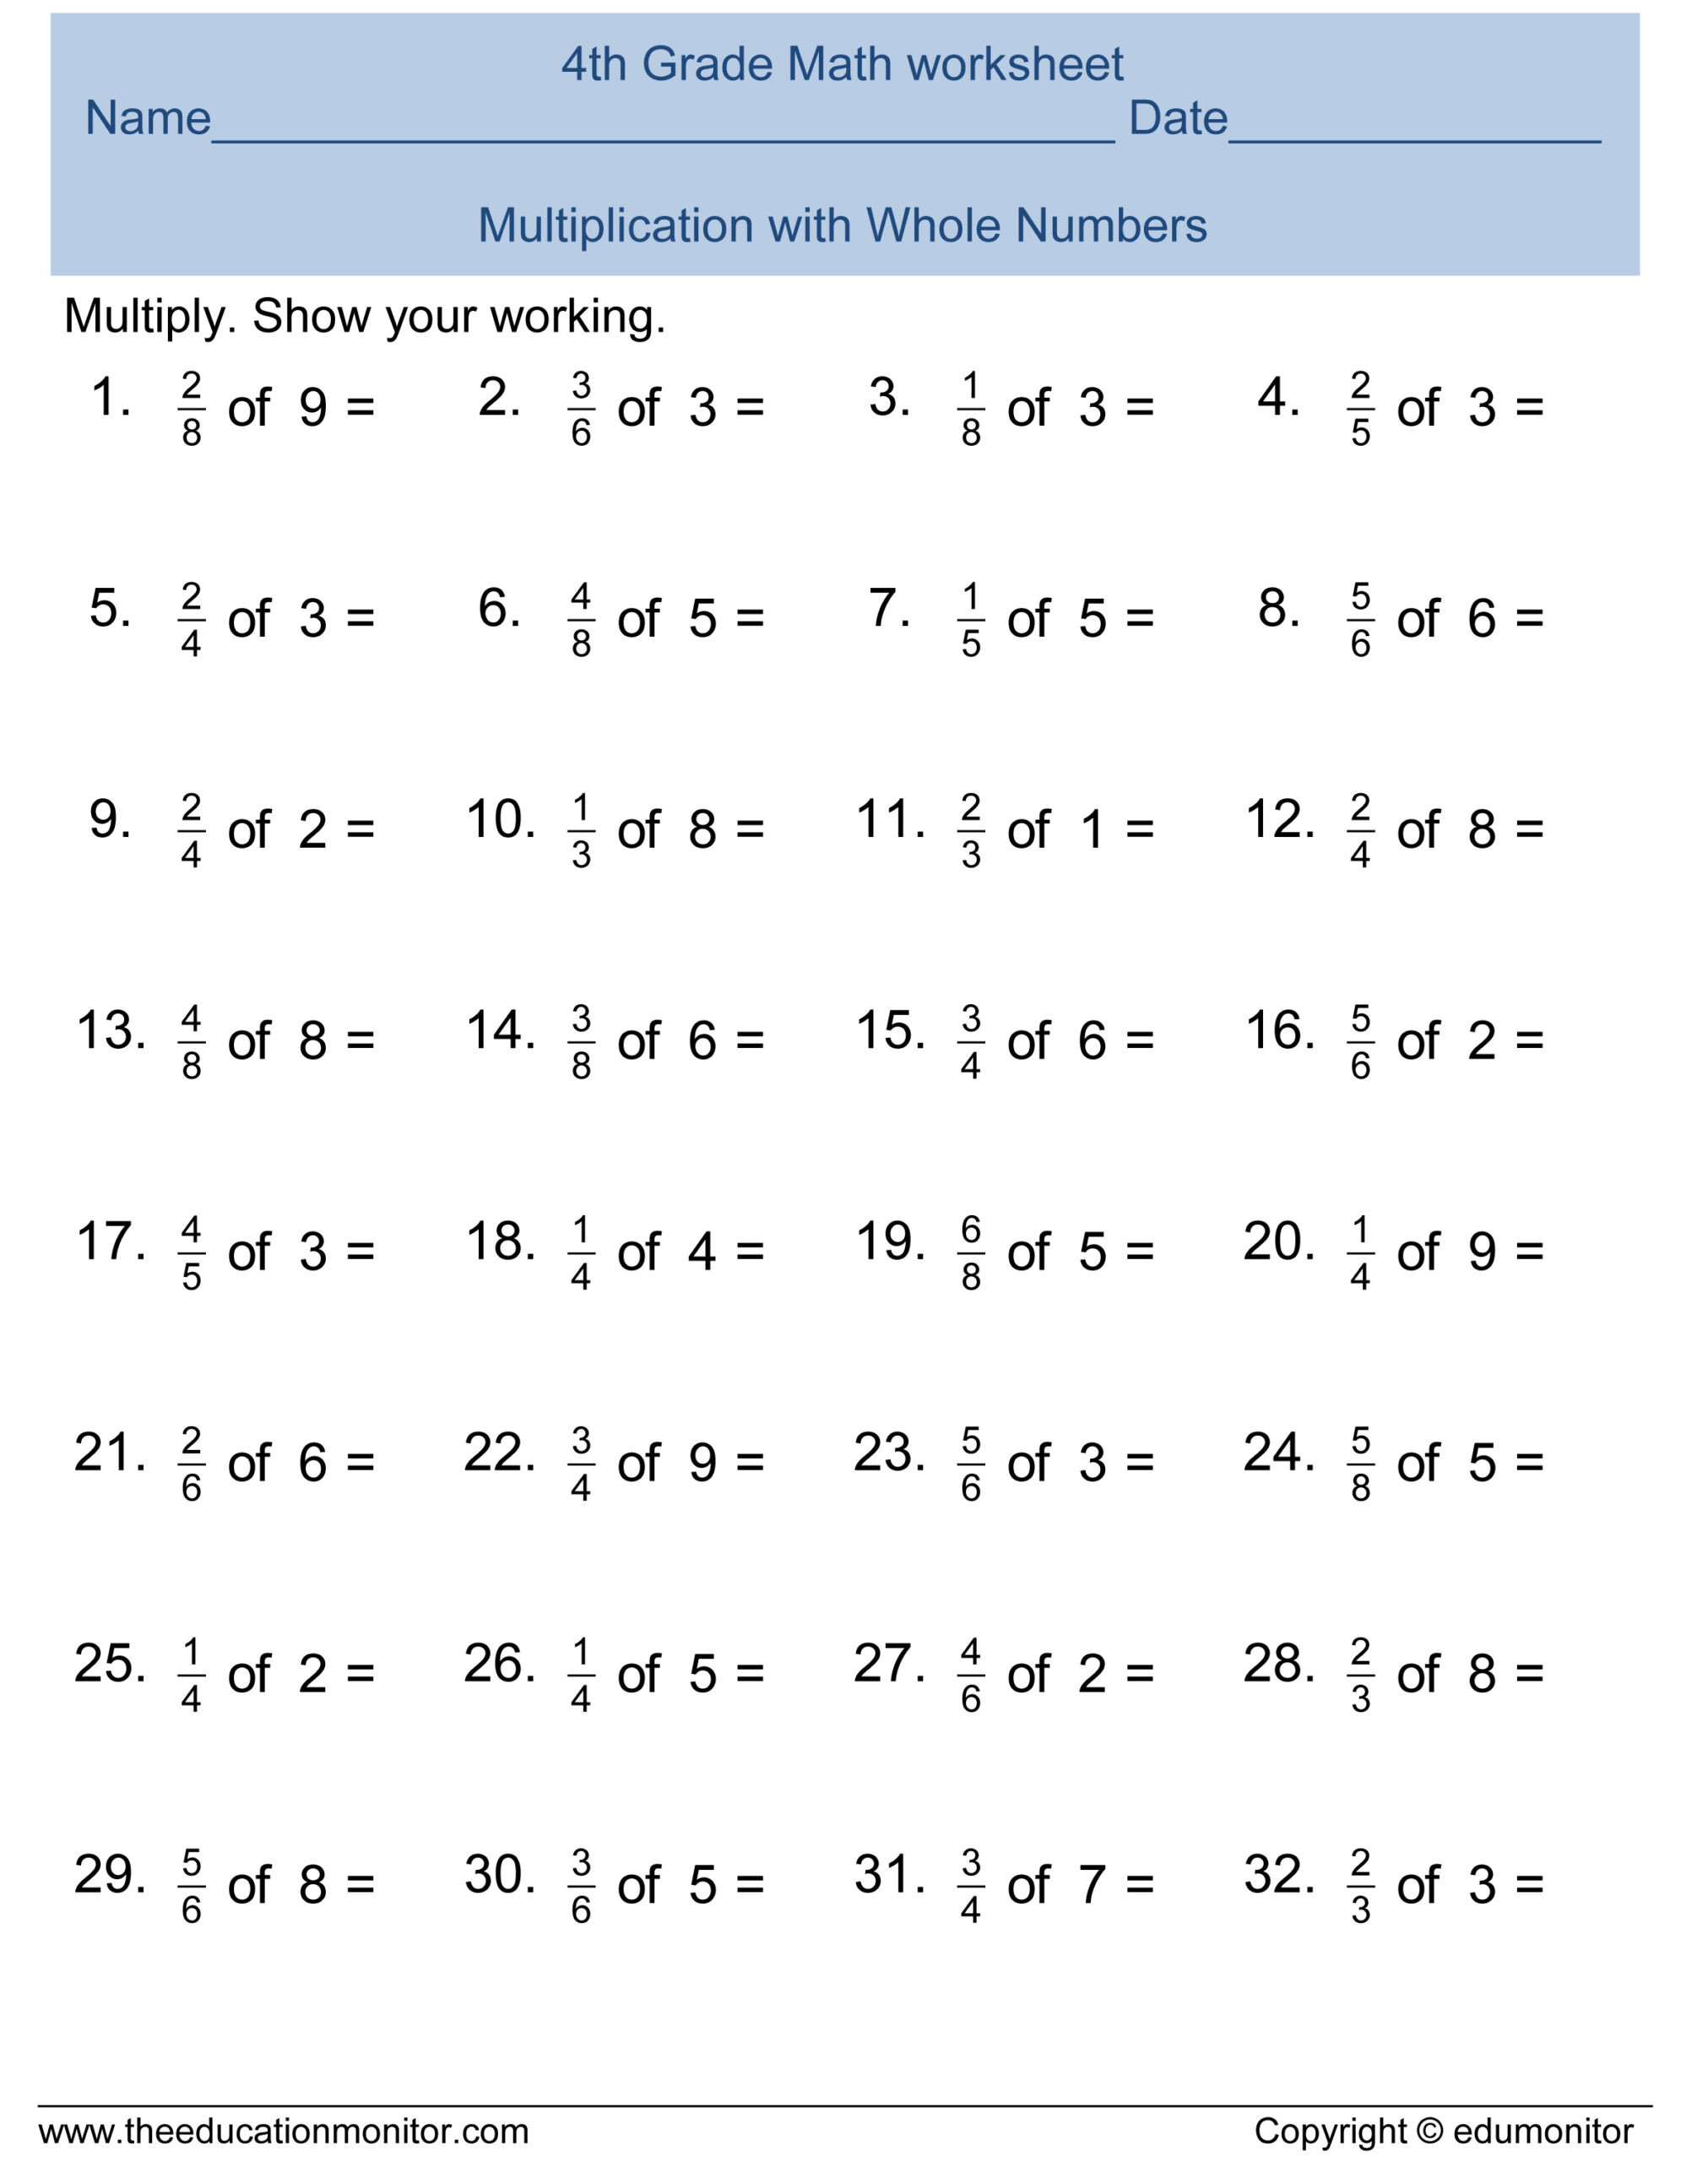 Abeka Math Worksheets Free 4th Grade Fractions Math Worksheets and Printables